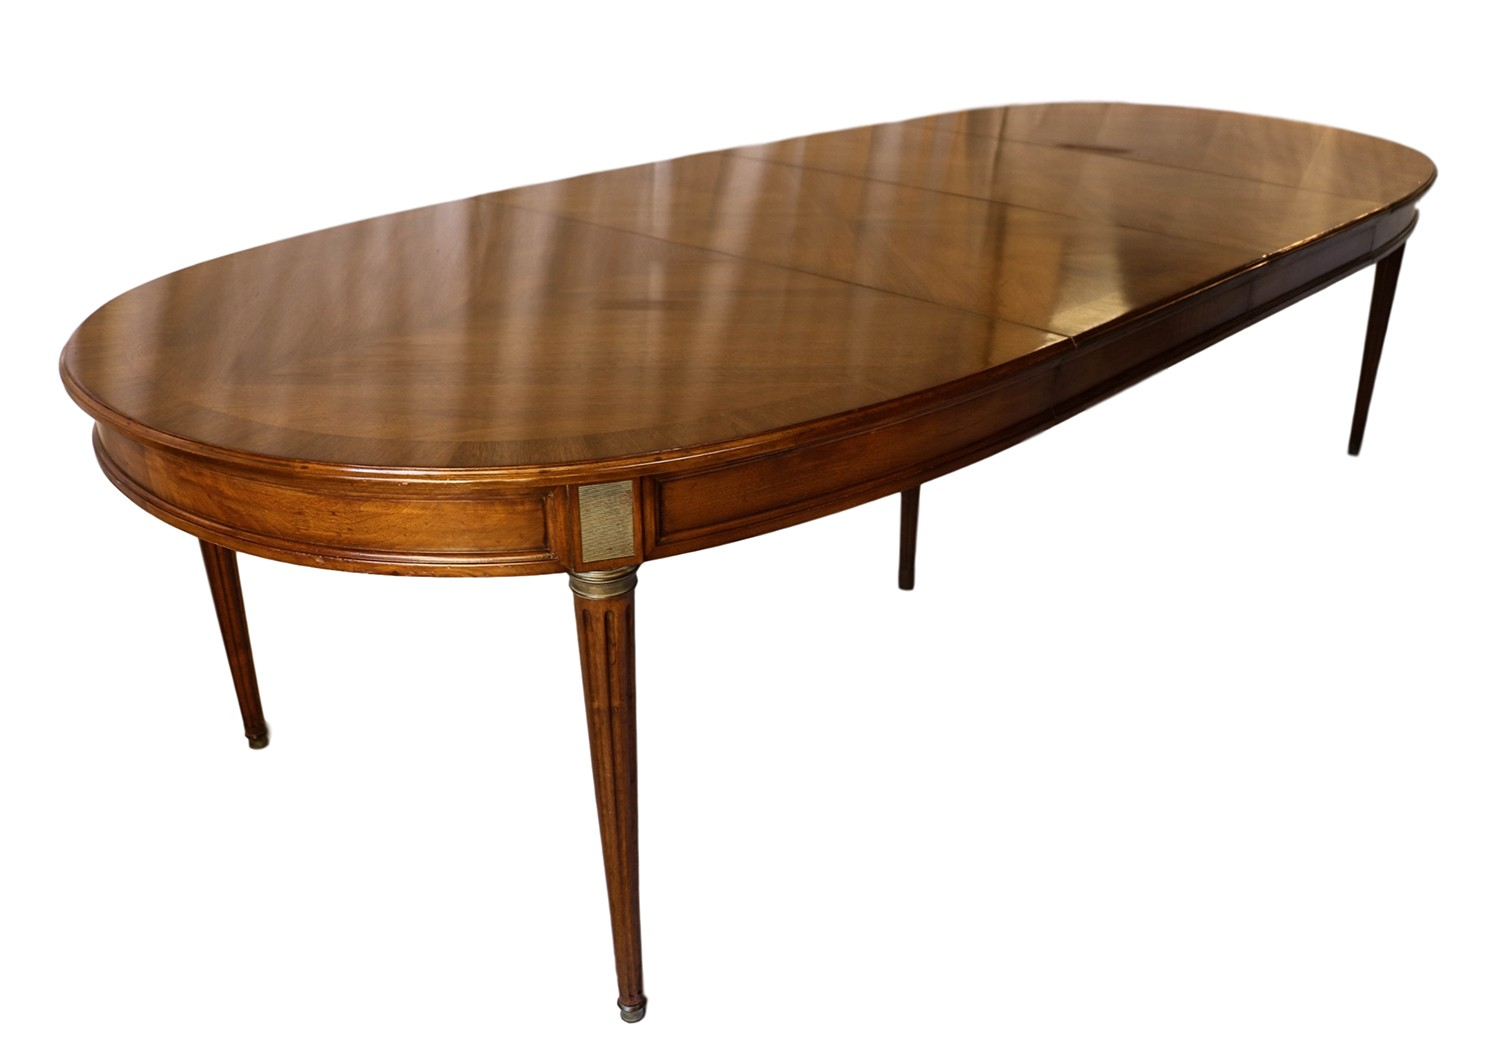 French Directoire Style Oval Walnut extending Dining Room  : French Directoire Style Oval Walnut extending Dining Room Table 2 from marykaysfurniture.com size 1500 x 1048 jpeg 271kB